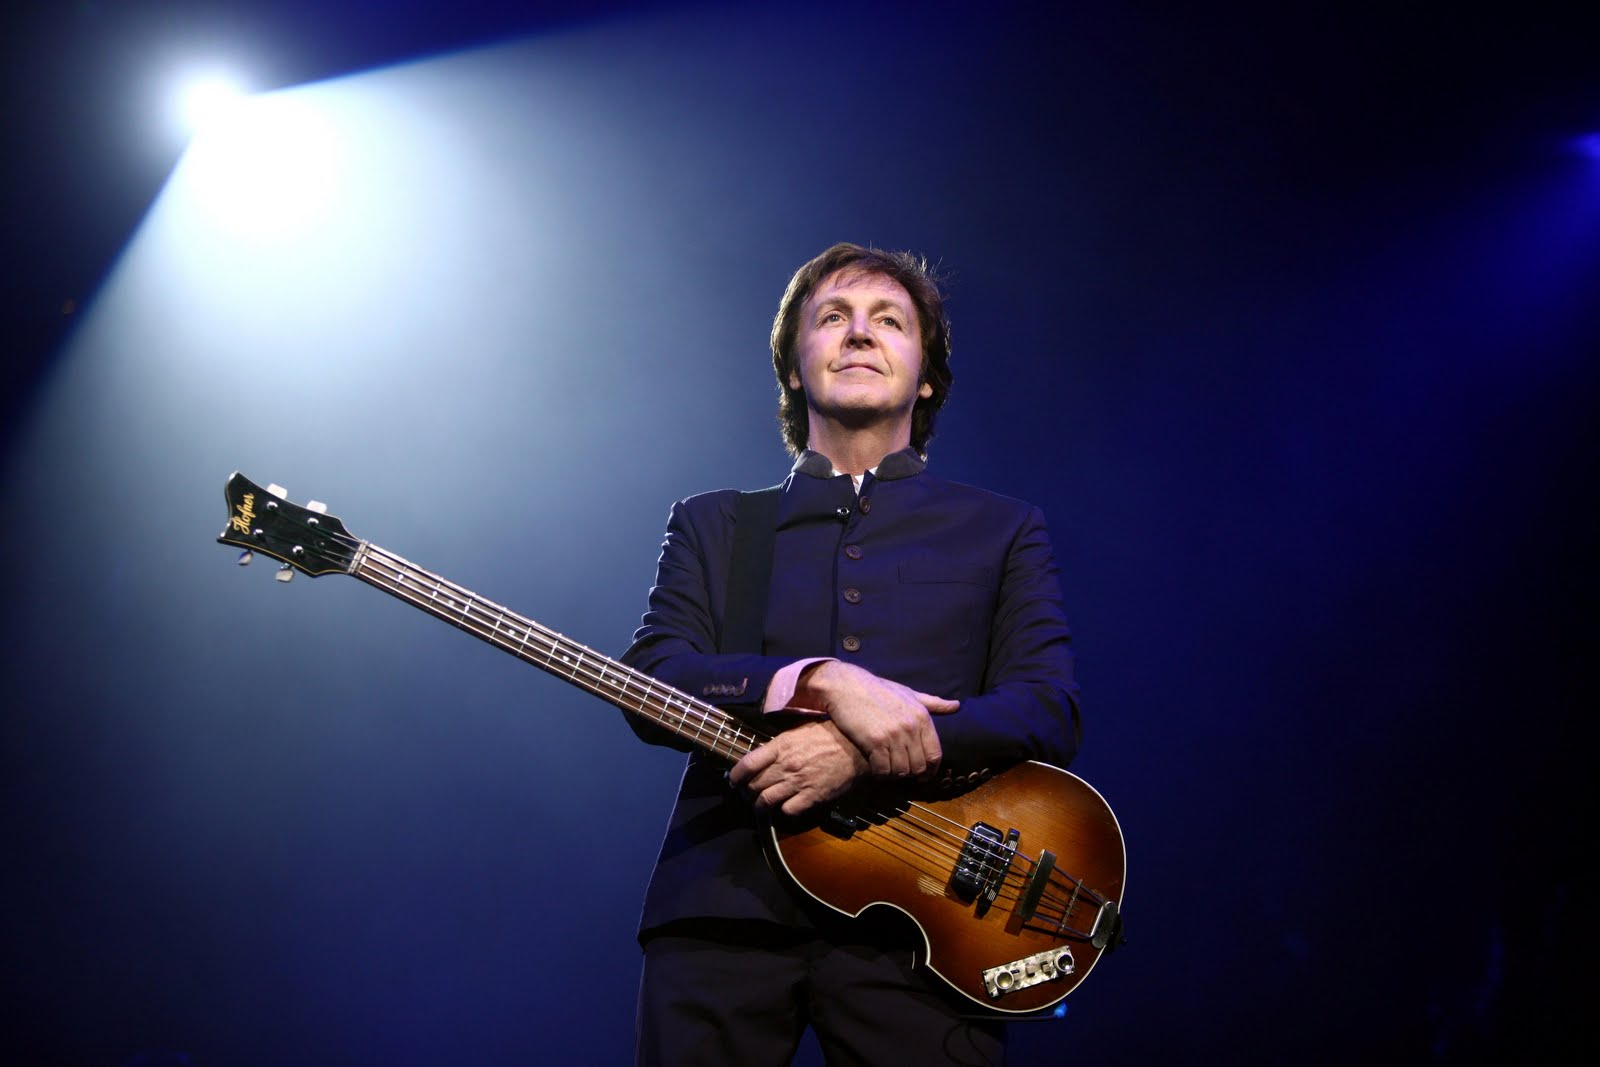 Paul McCartney 69M likes Page administered by MPL